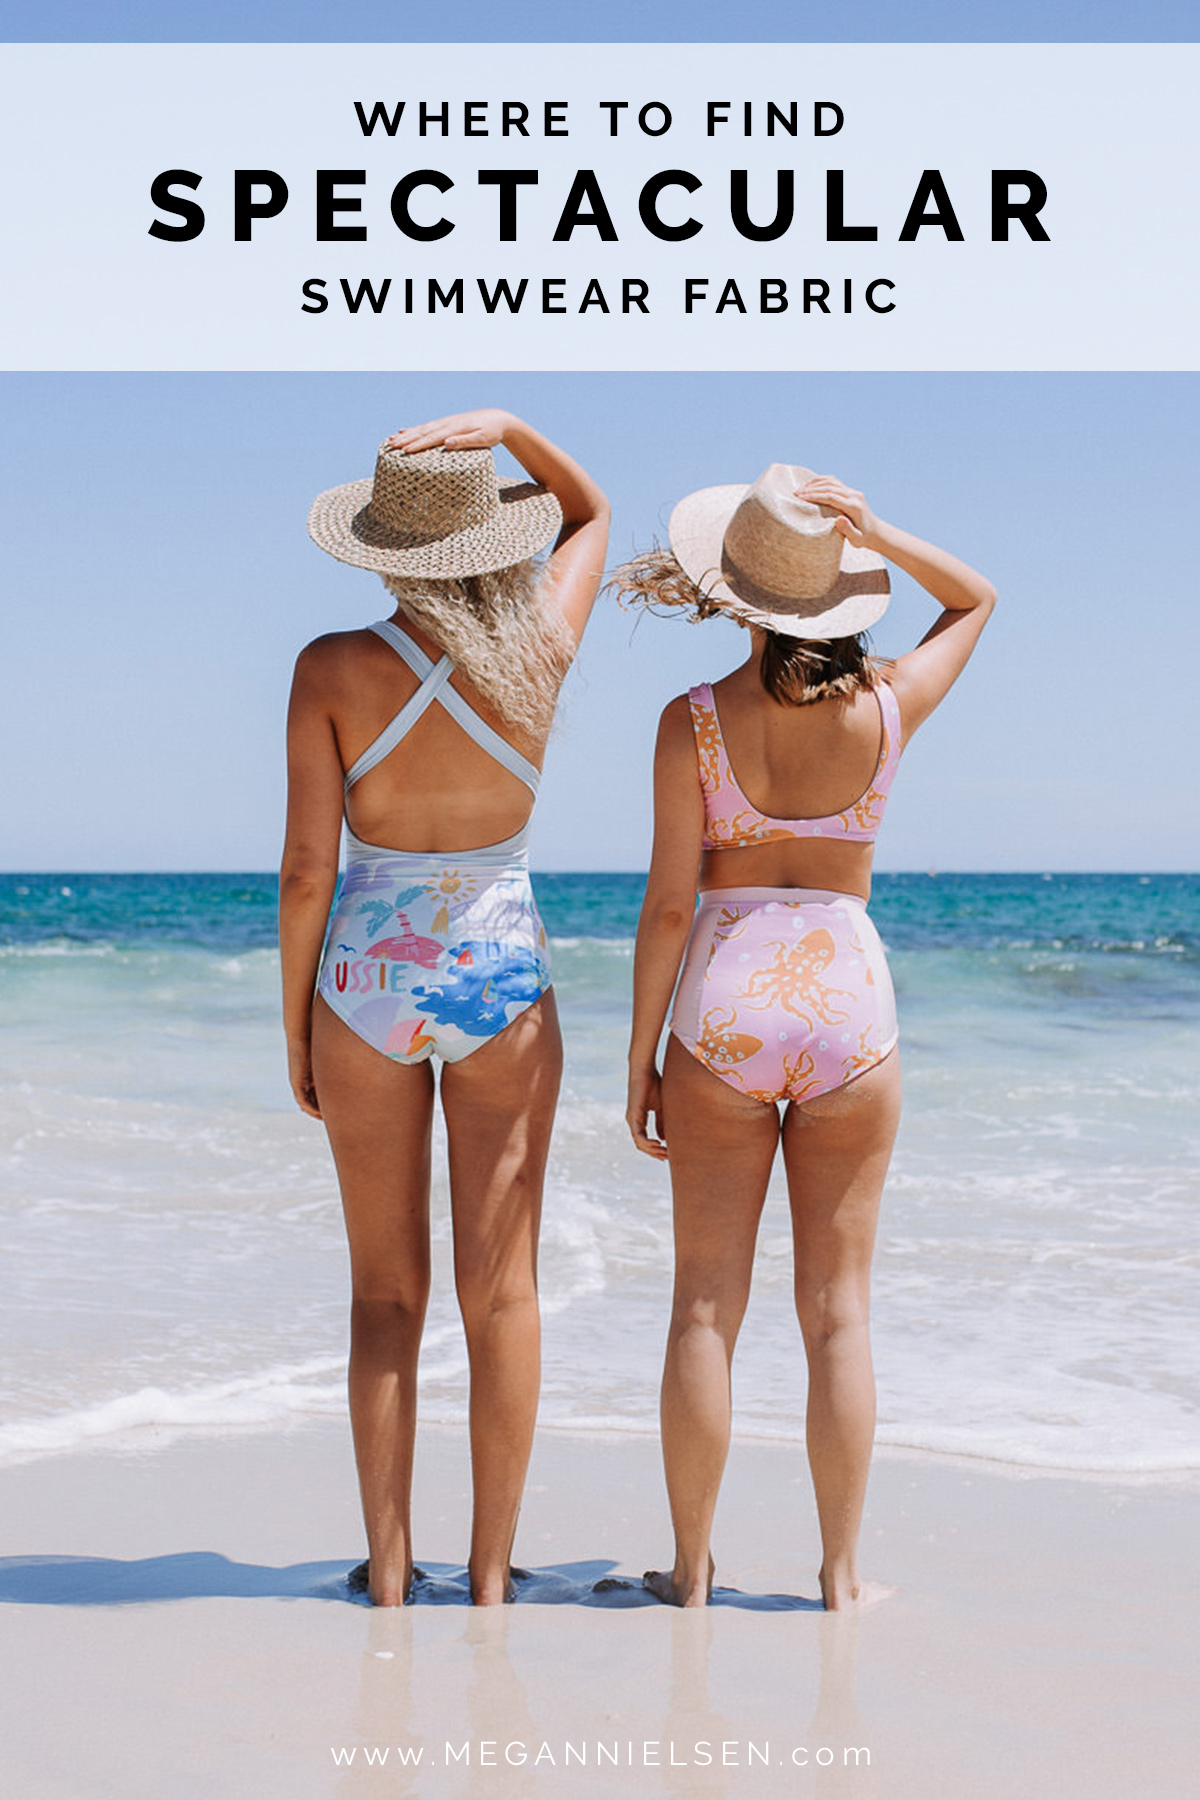 WHERE TO FIND SPECTACULAR SWIMWEAR FABRIC